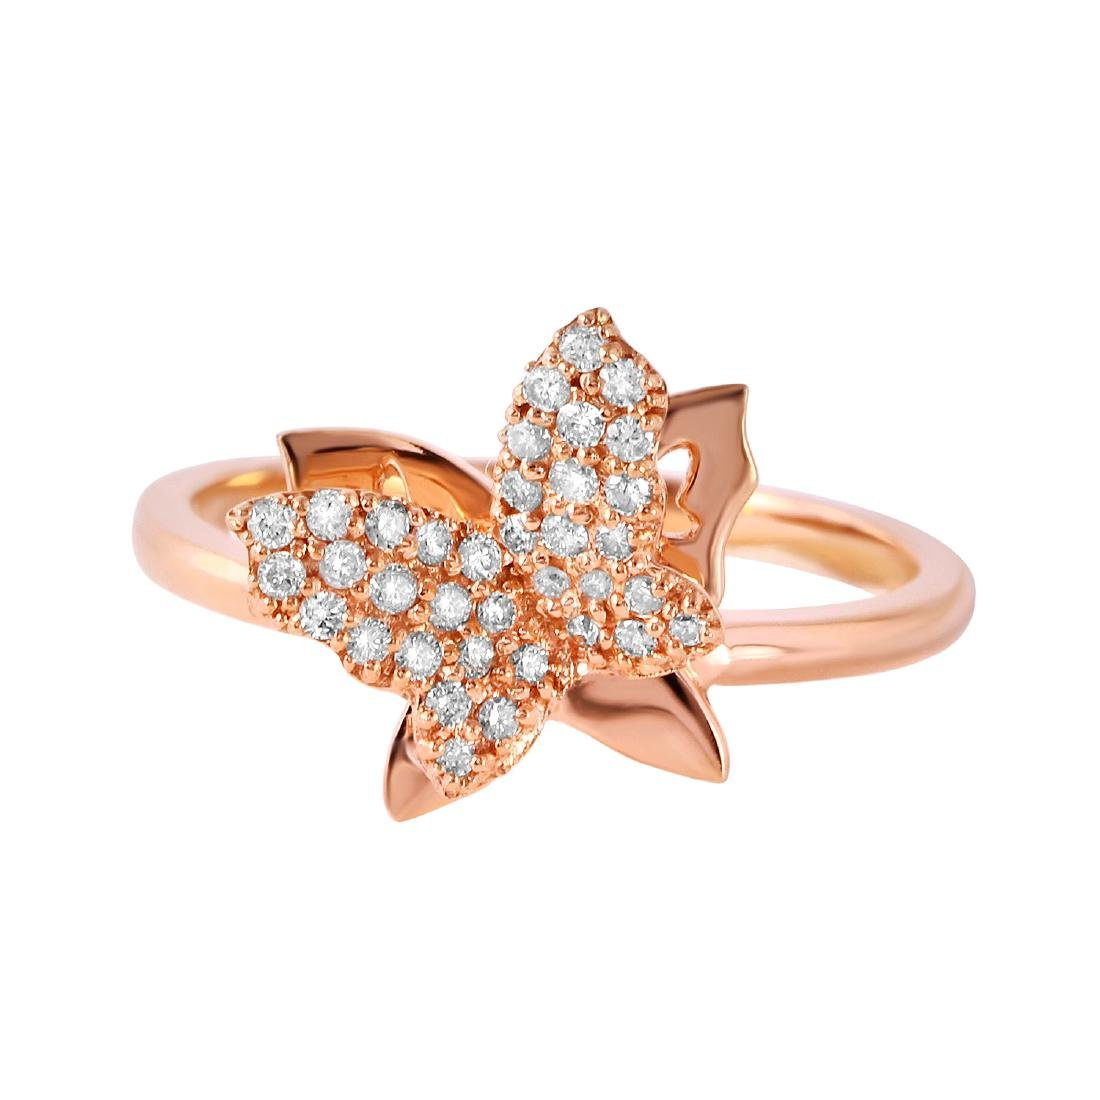 0.21 Carat Natural Diamond 18K Solid Rose Gold Ring - 2